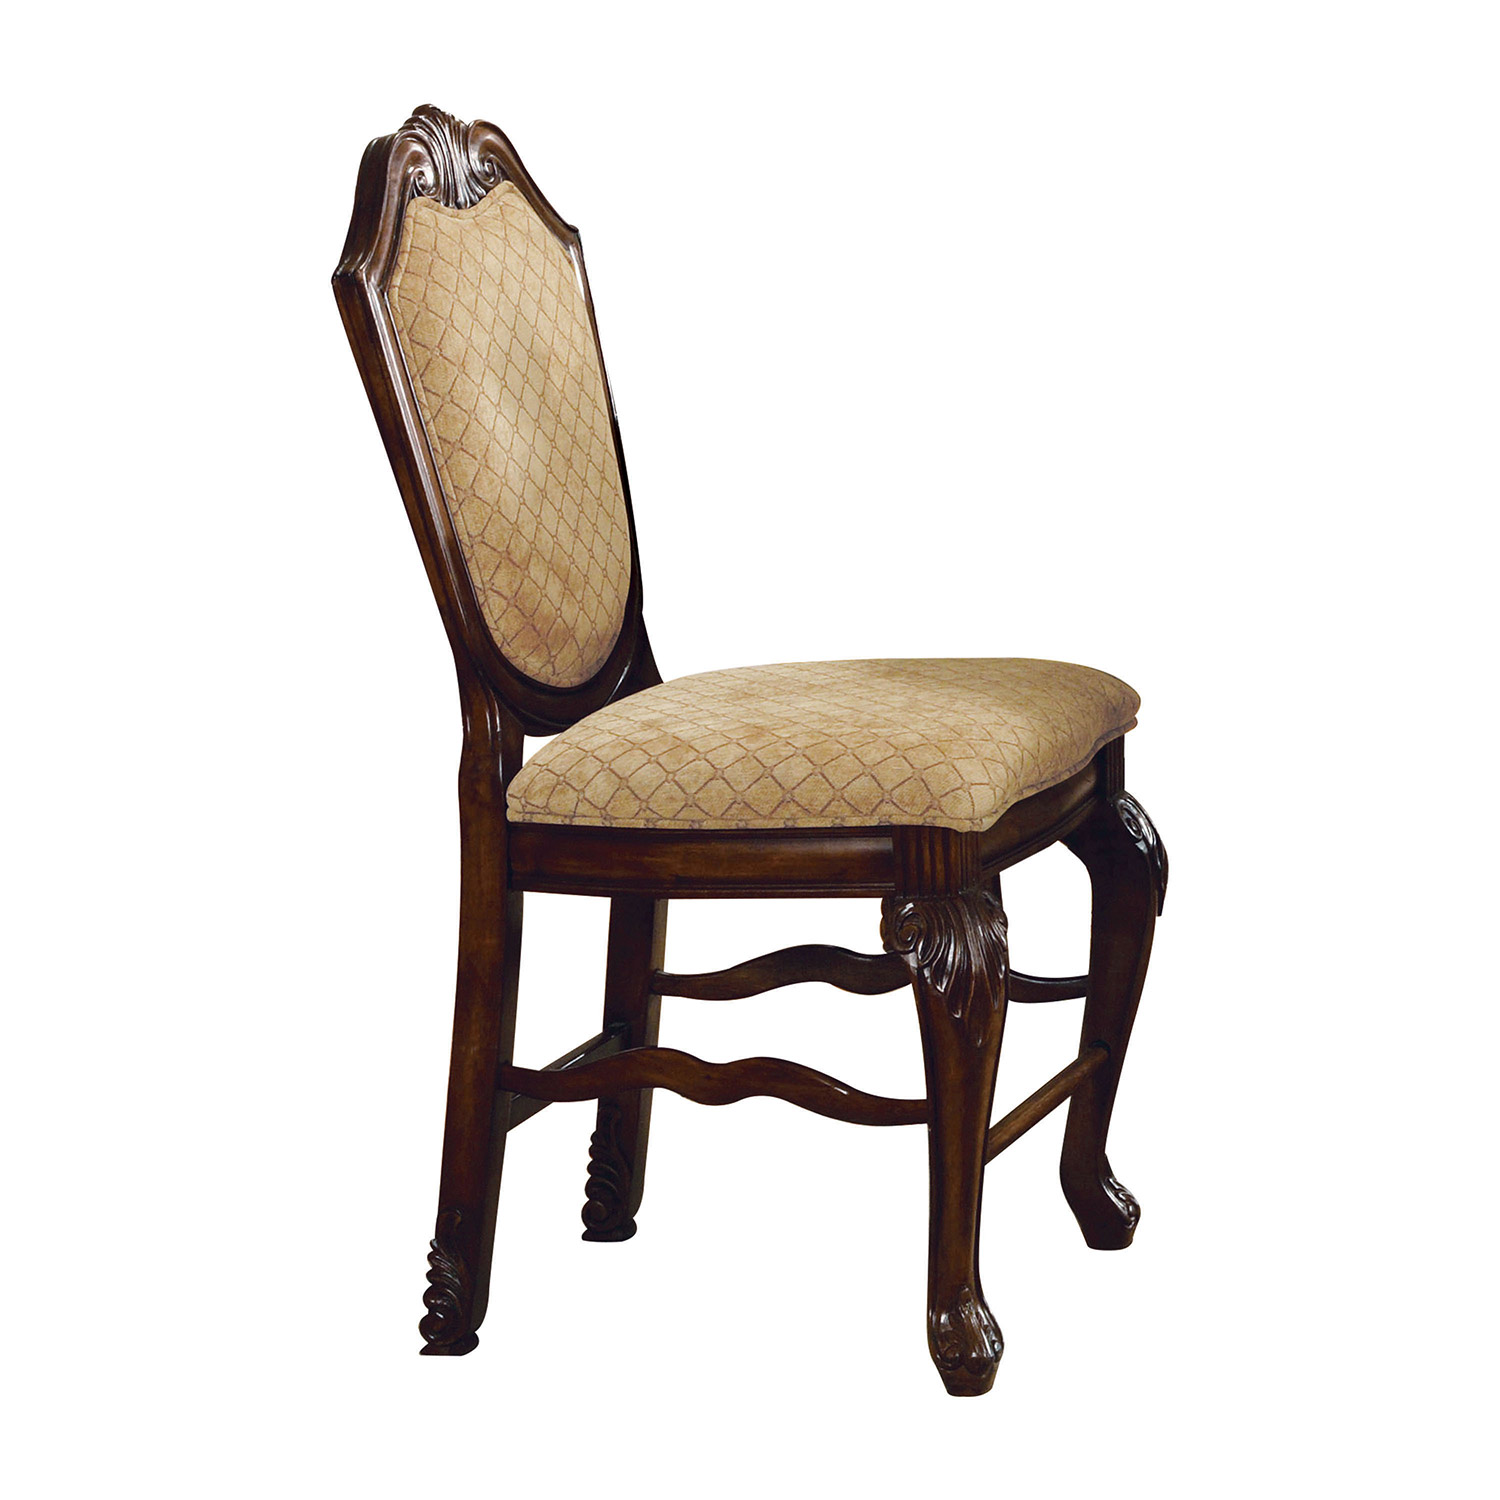 Acme Chateau De Ville Counter Height Chair - Fabric/Espresso